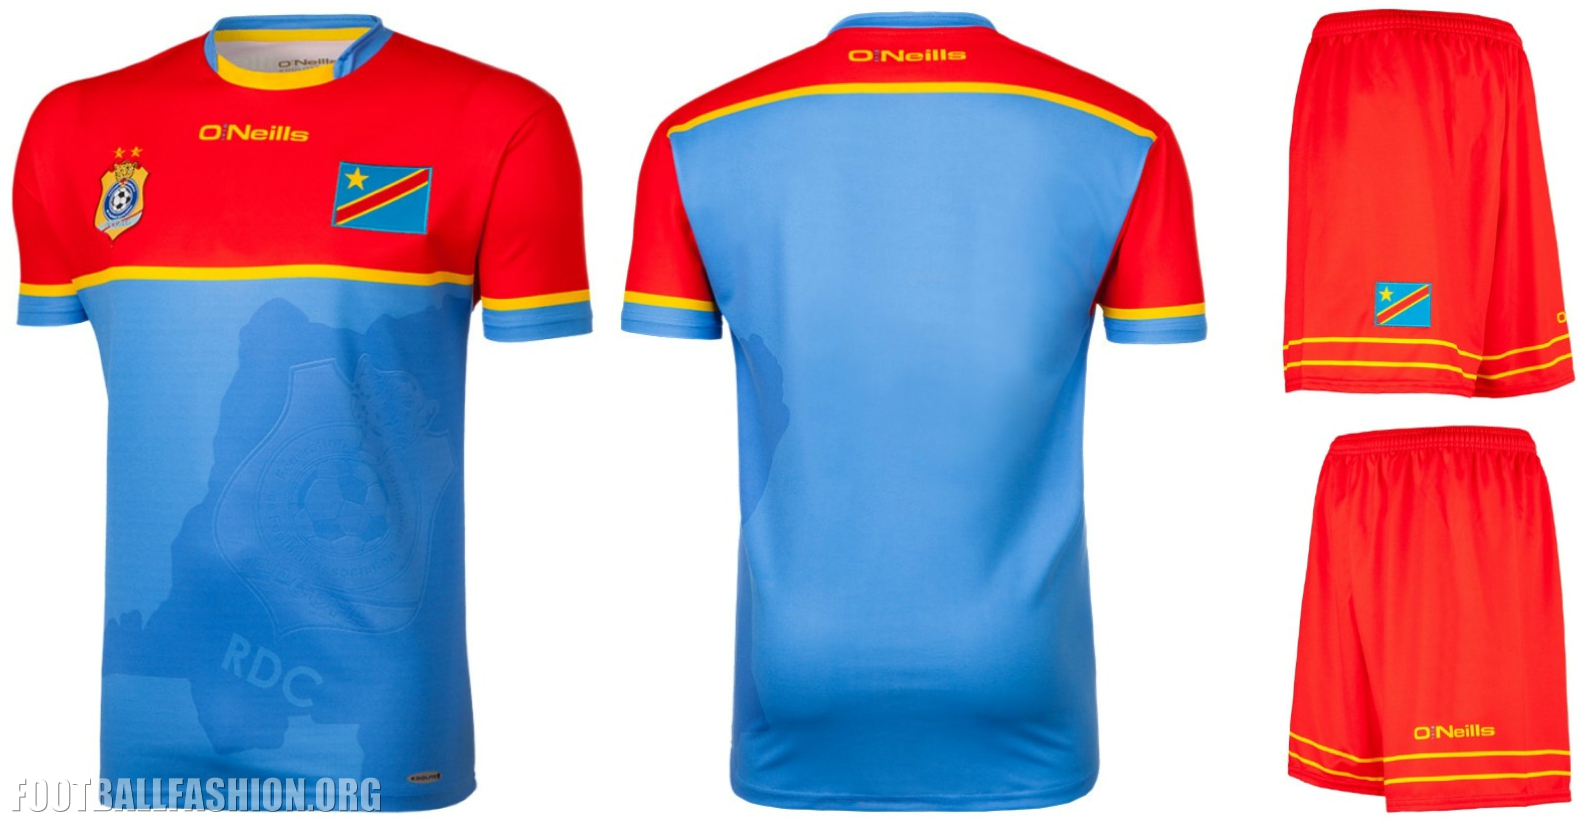 Dr Congo 2017 Africa Cup Of Nations O Neills Kits Football Fashion Org